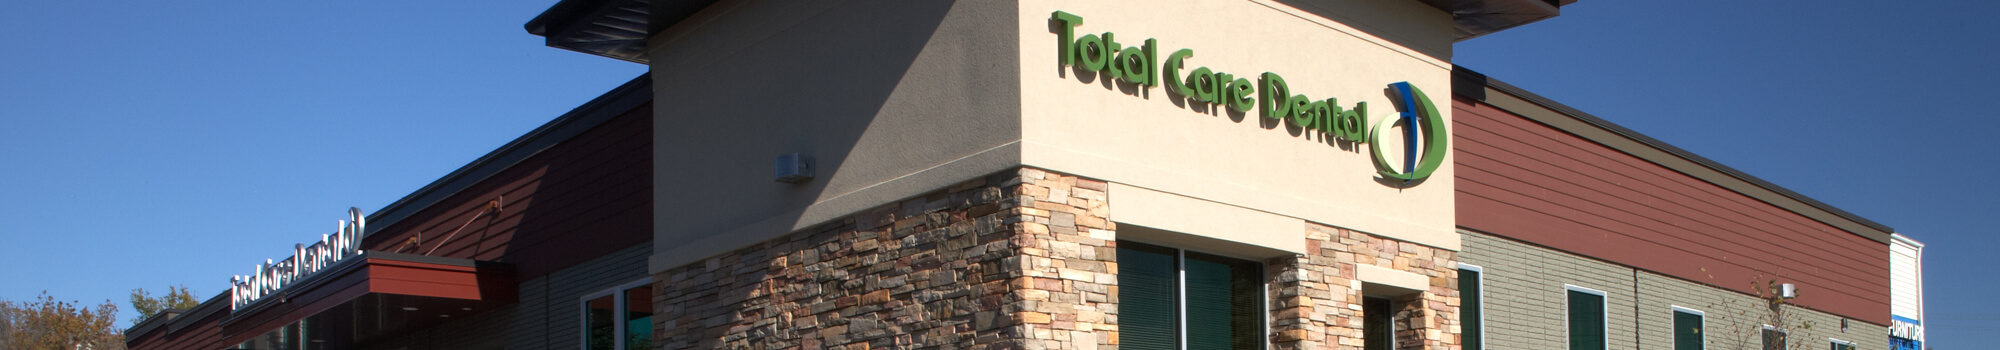 Total Care Dental in Madison, Wisconsin has the answer for your dental concerns